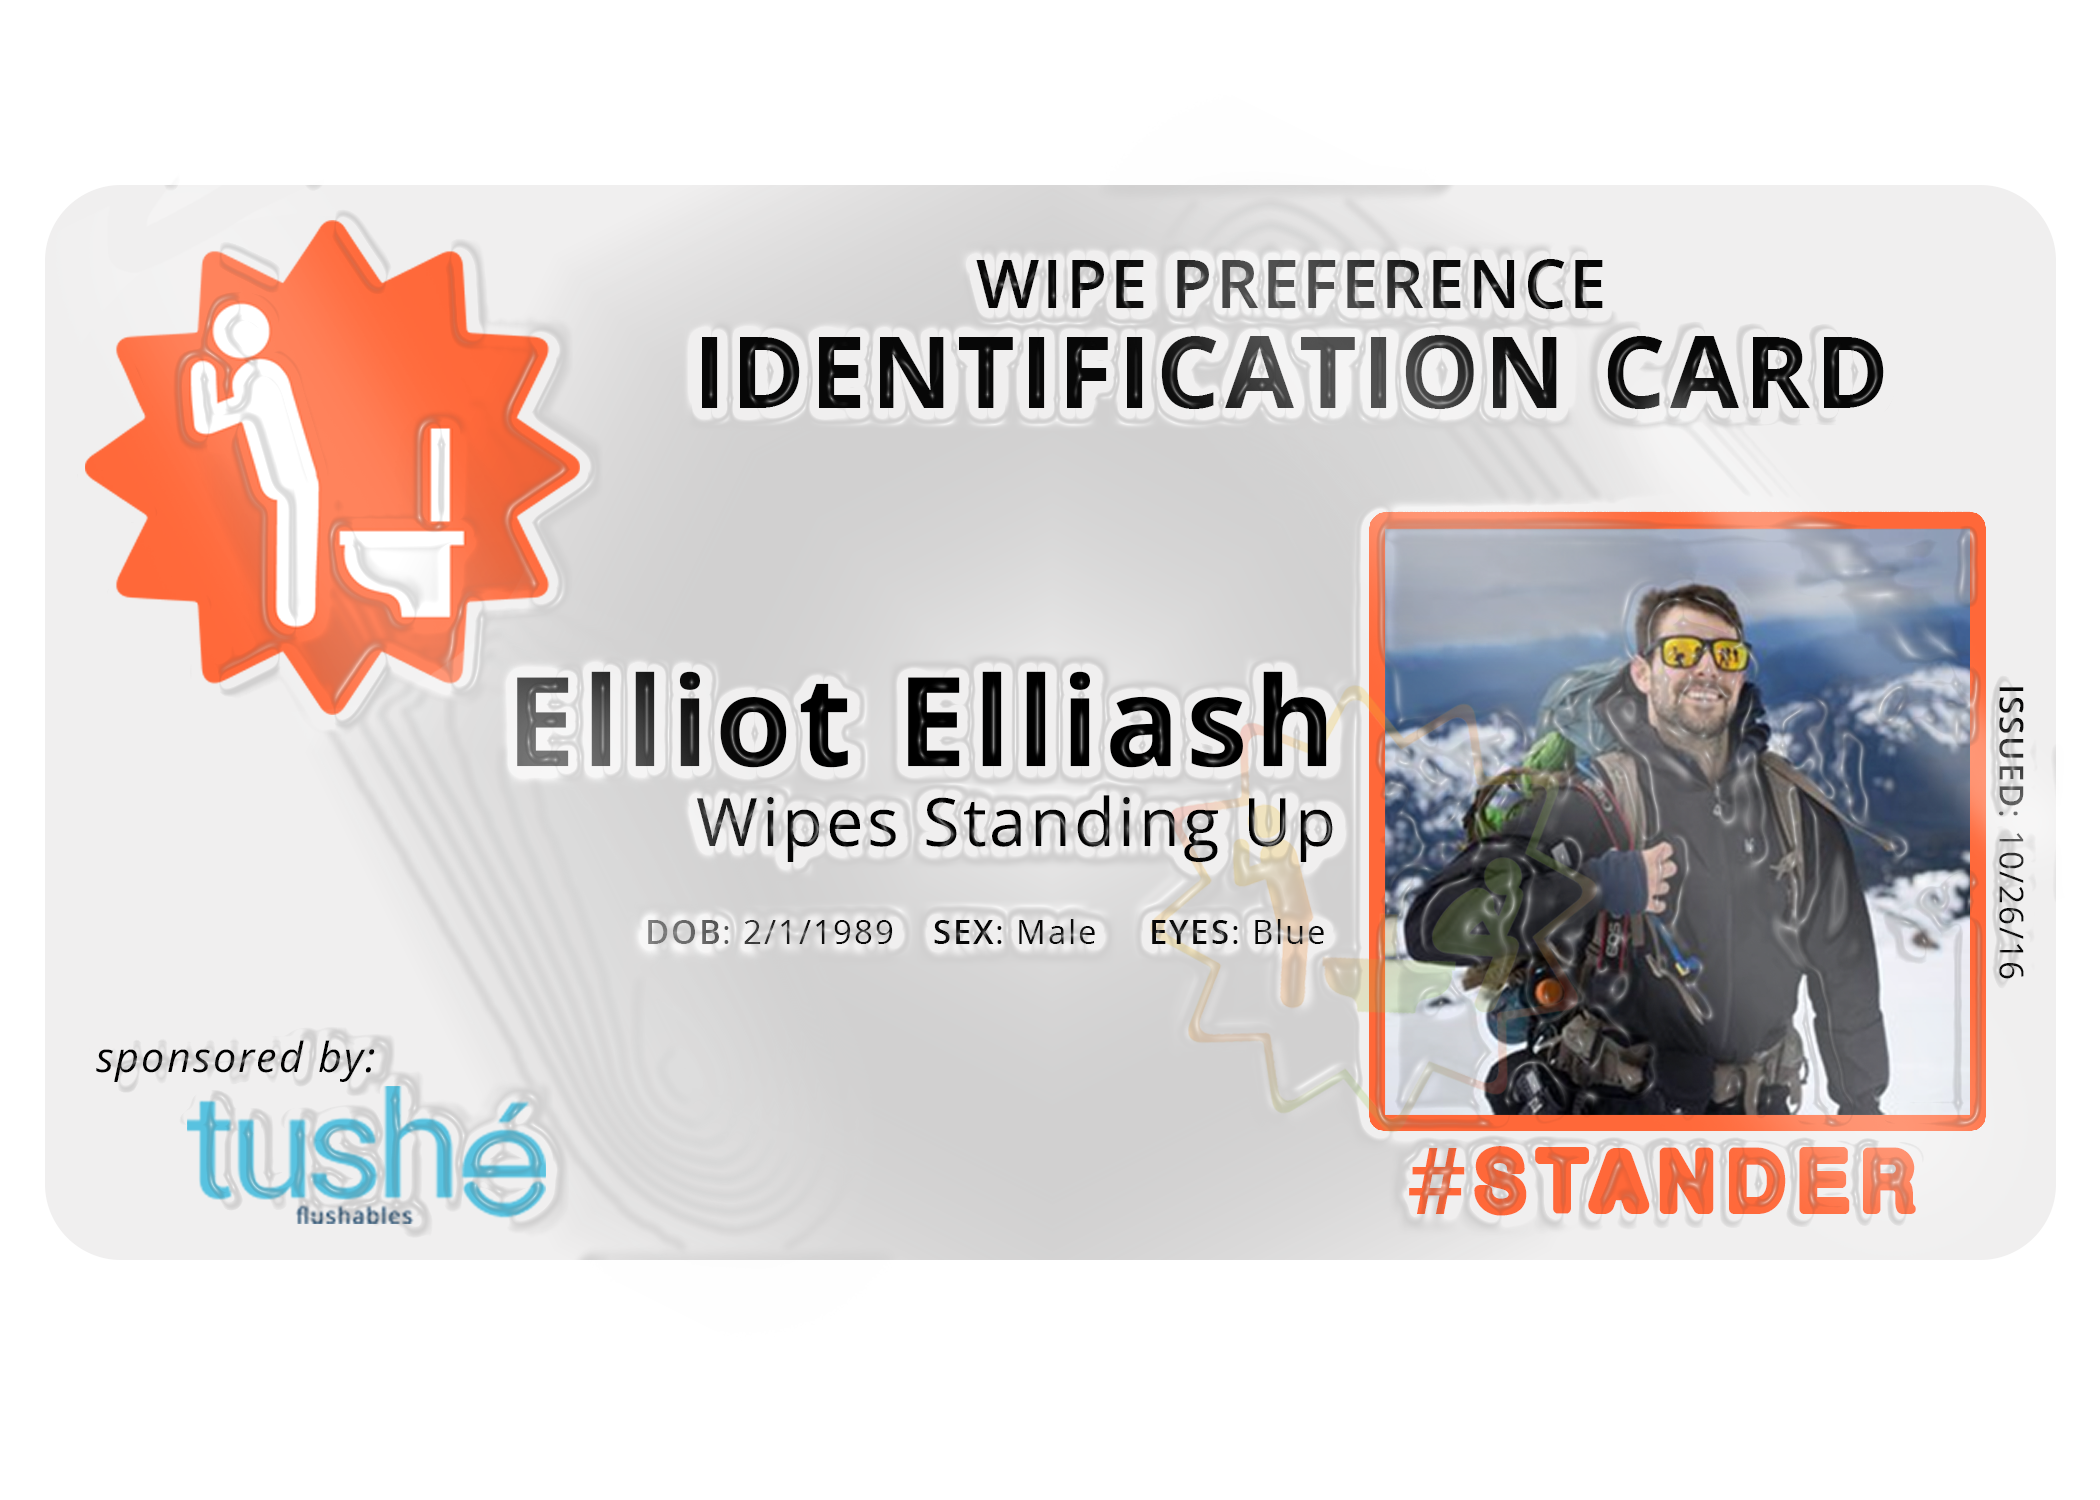 Free Stuff | ID Card  +An ID card to declare your wiping style.  + Shareable social object to extend campaign reach.